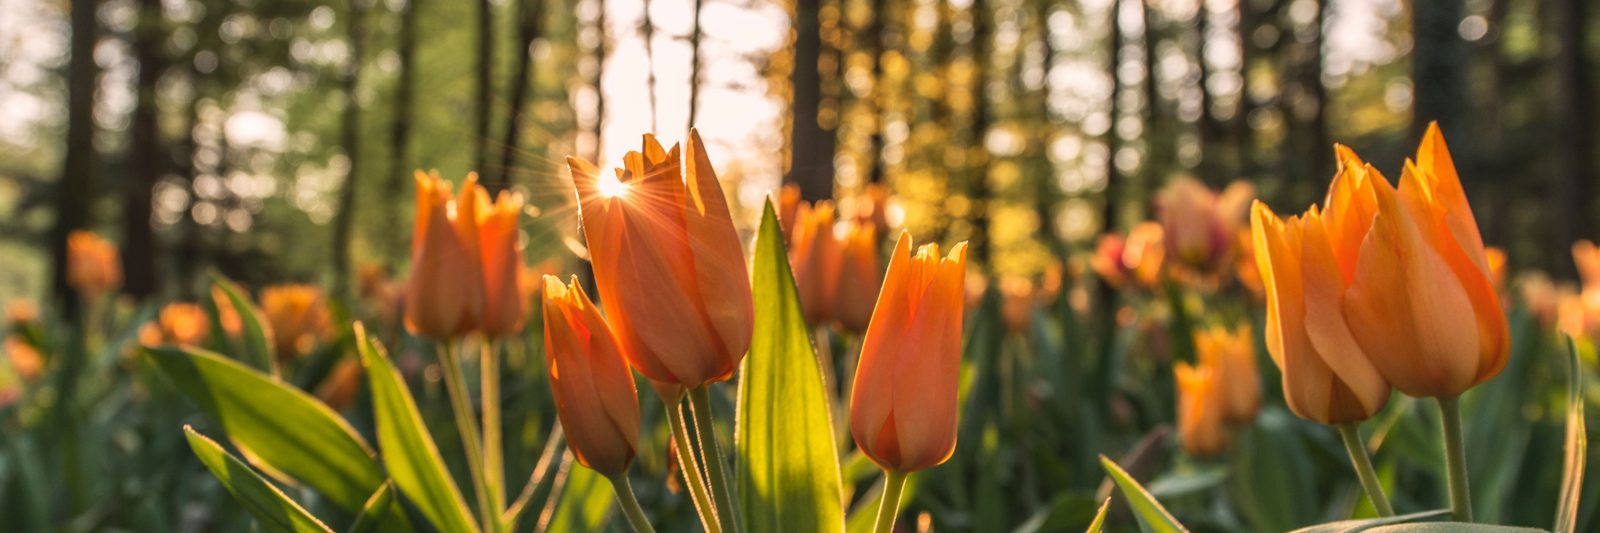 Orange tulips in a forest